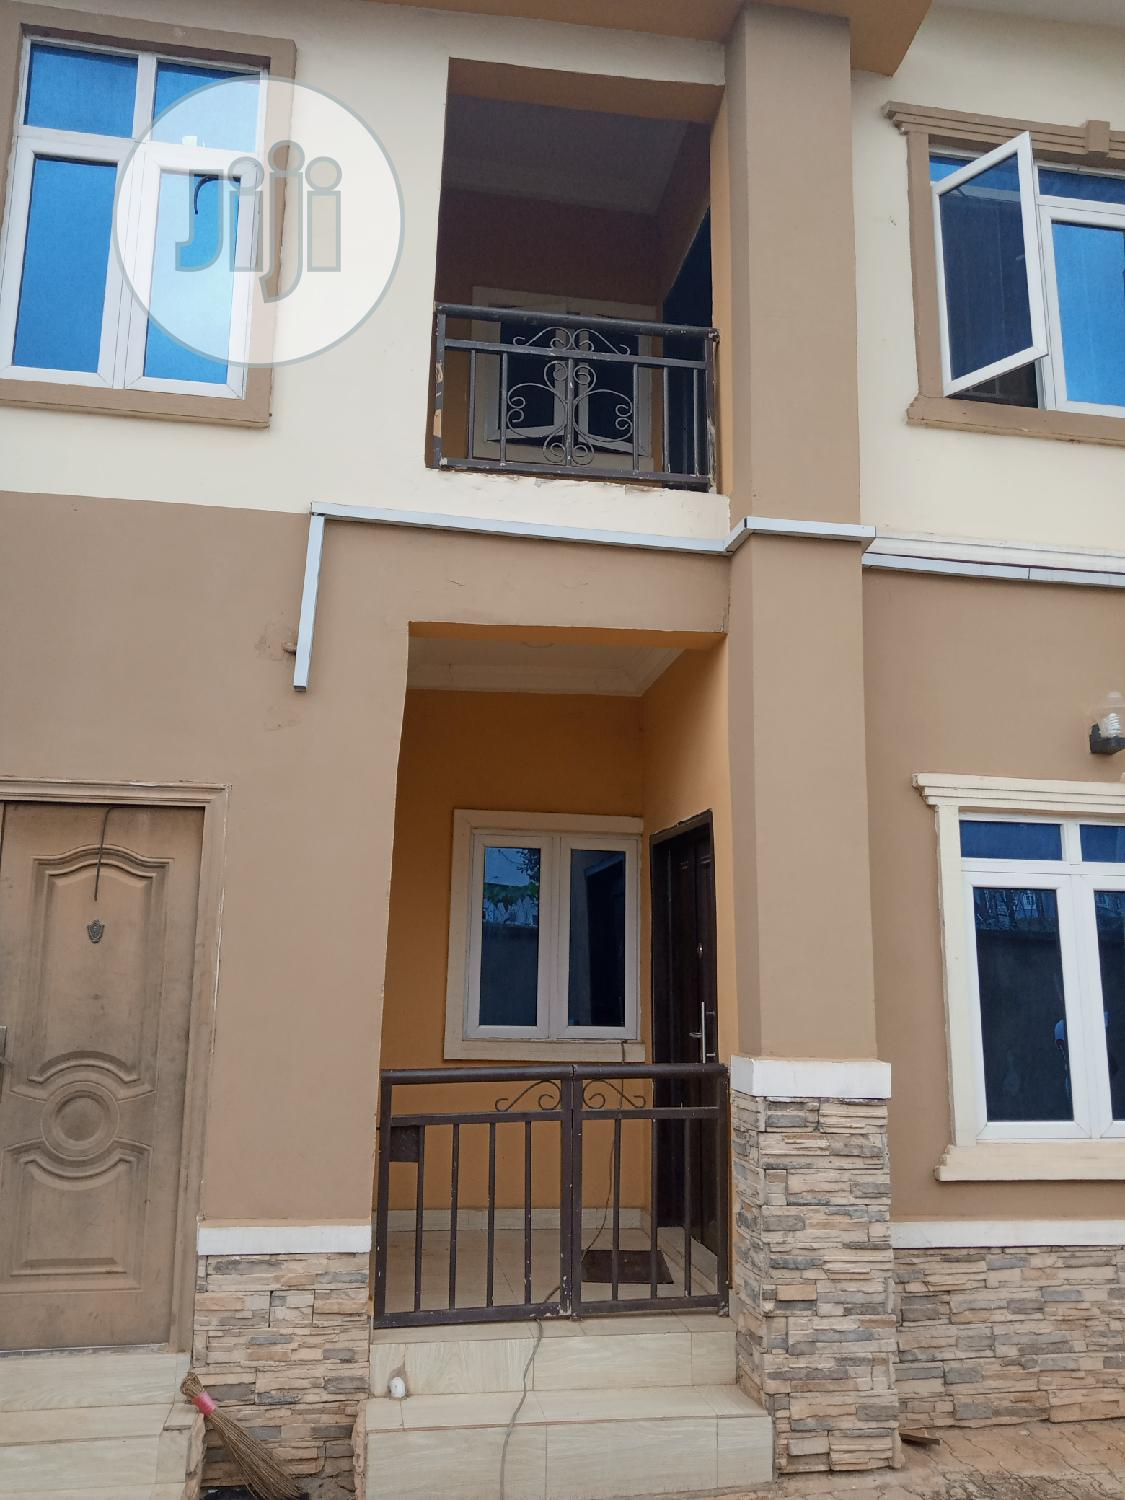 2 Bedrooms Flat @ Thinkers Conner